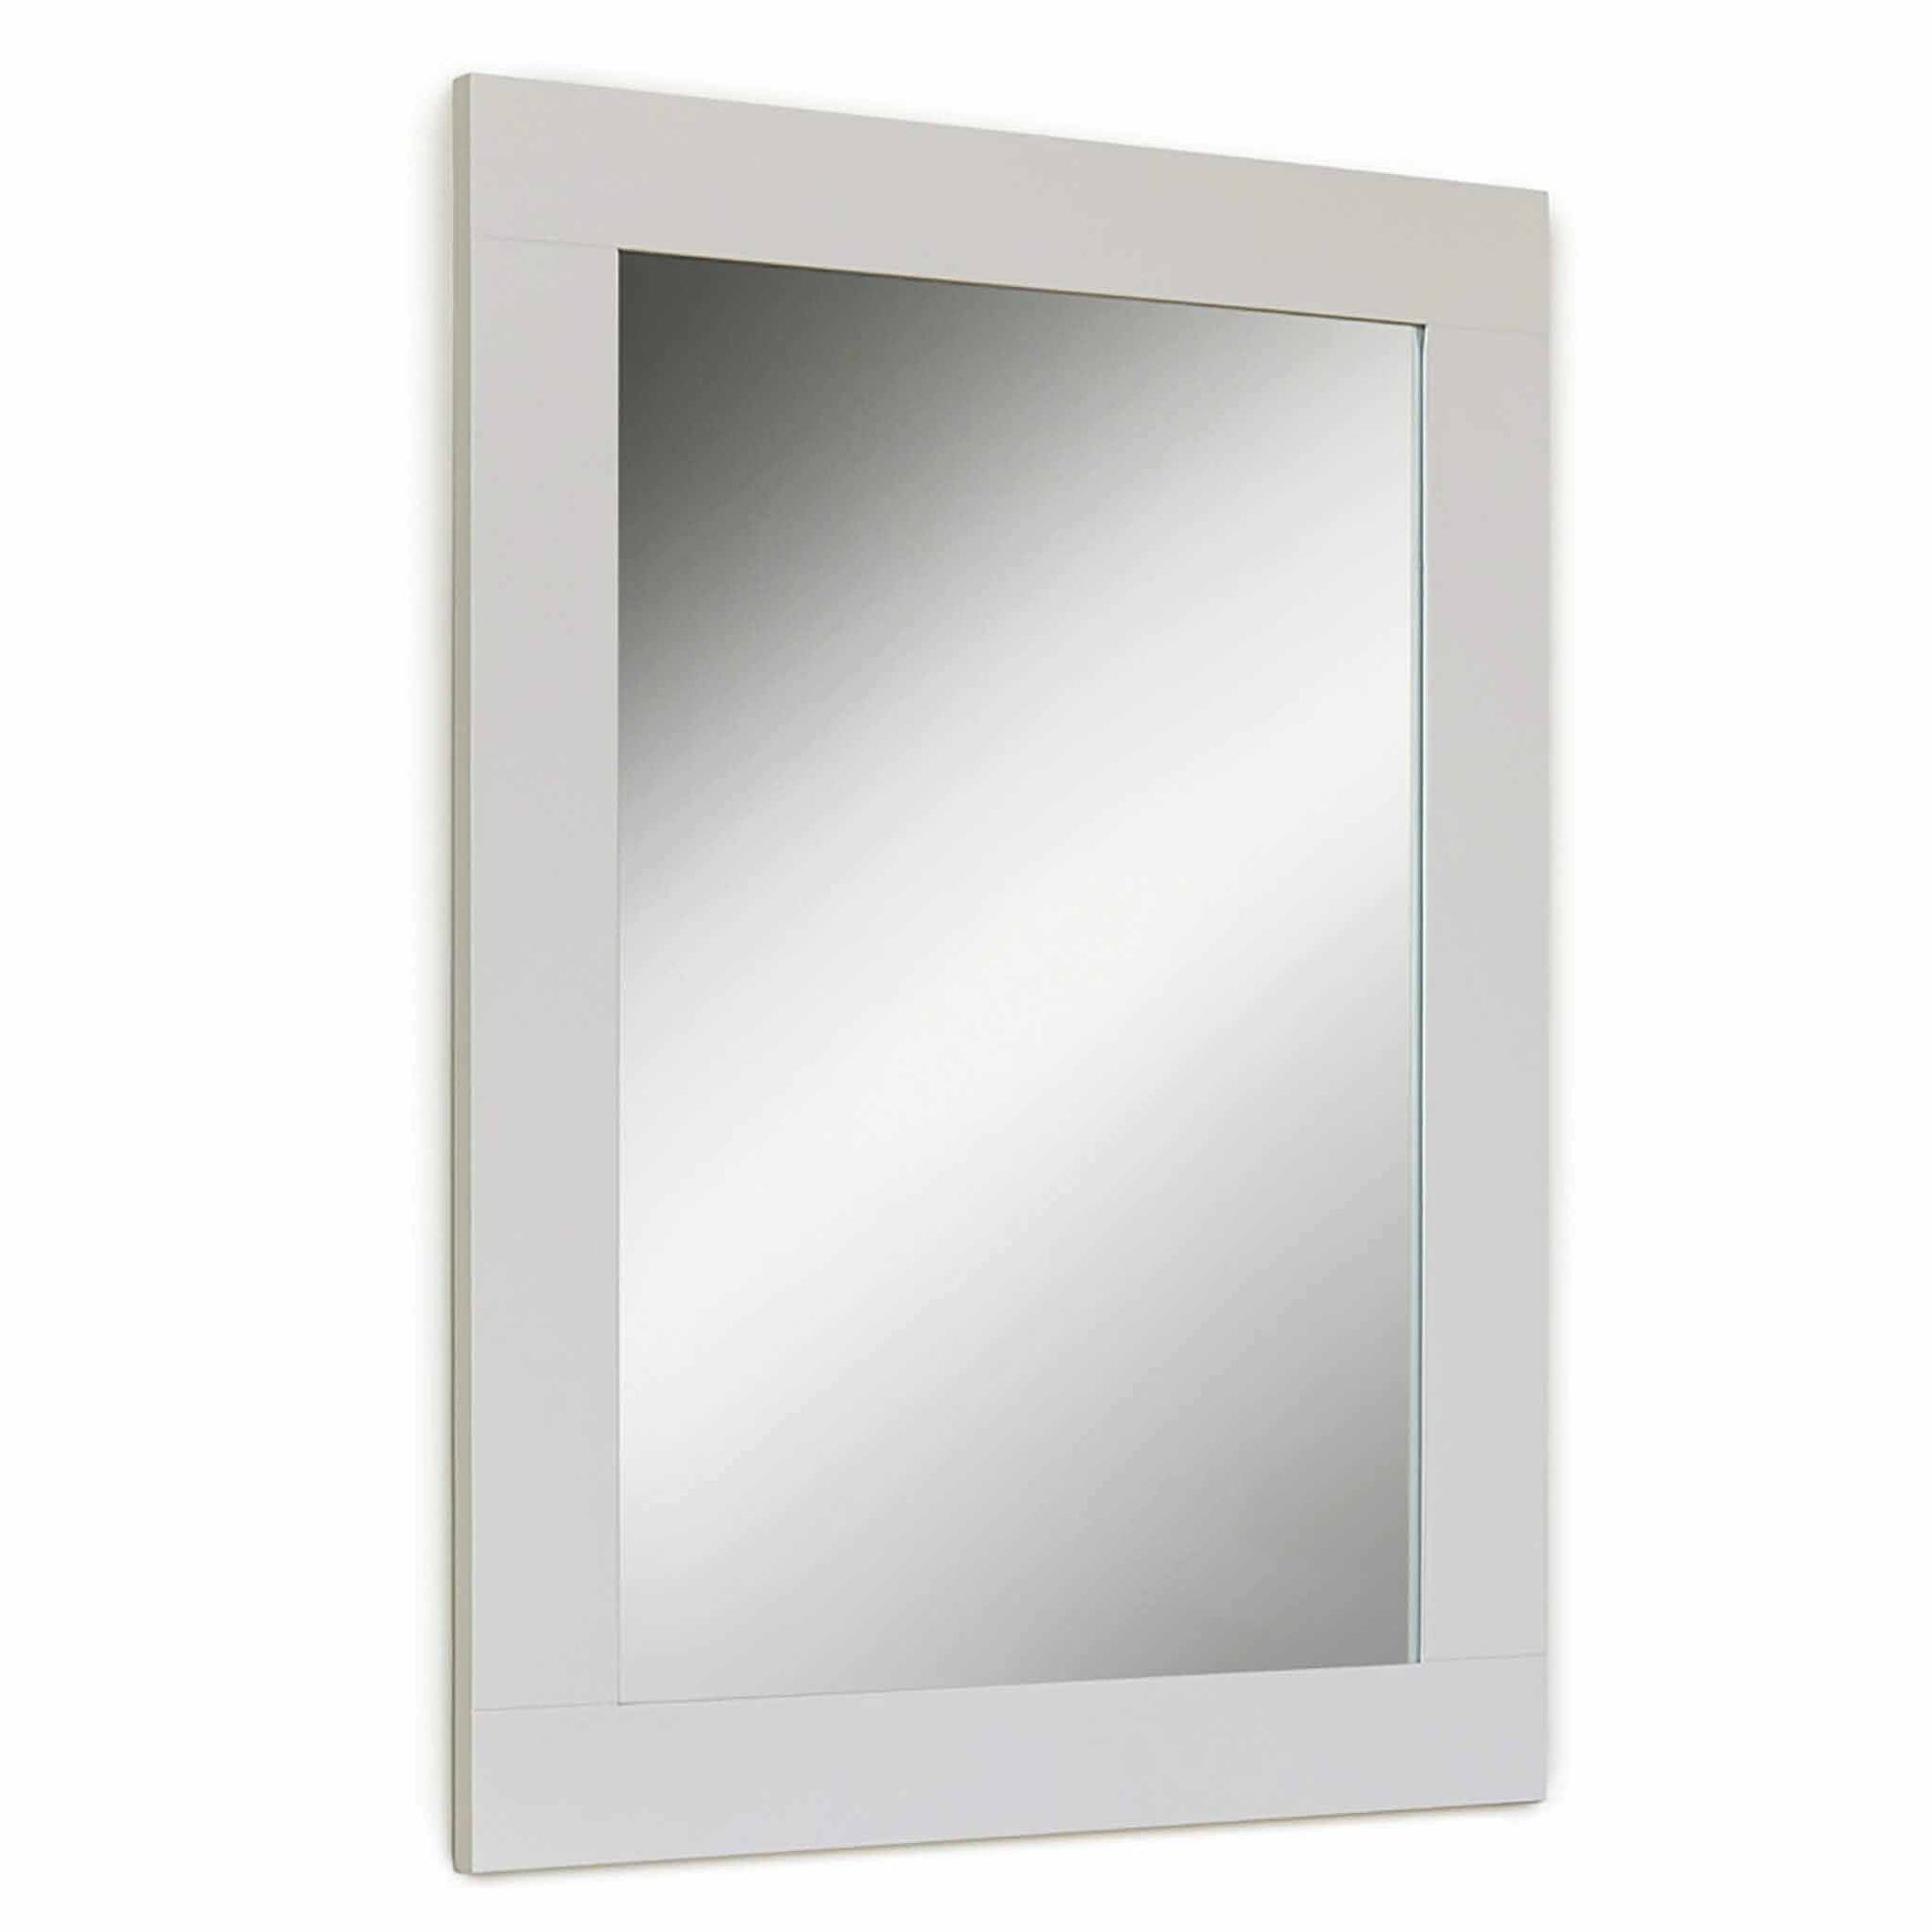 Signature Grey Mirror by Roseland Furniture